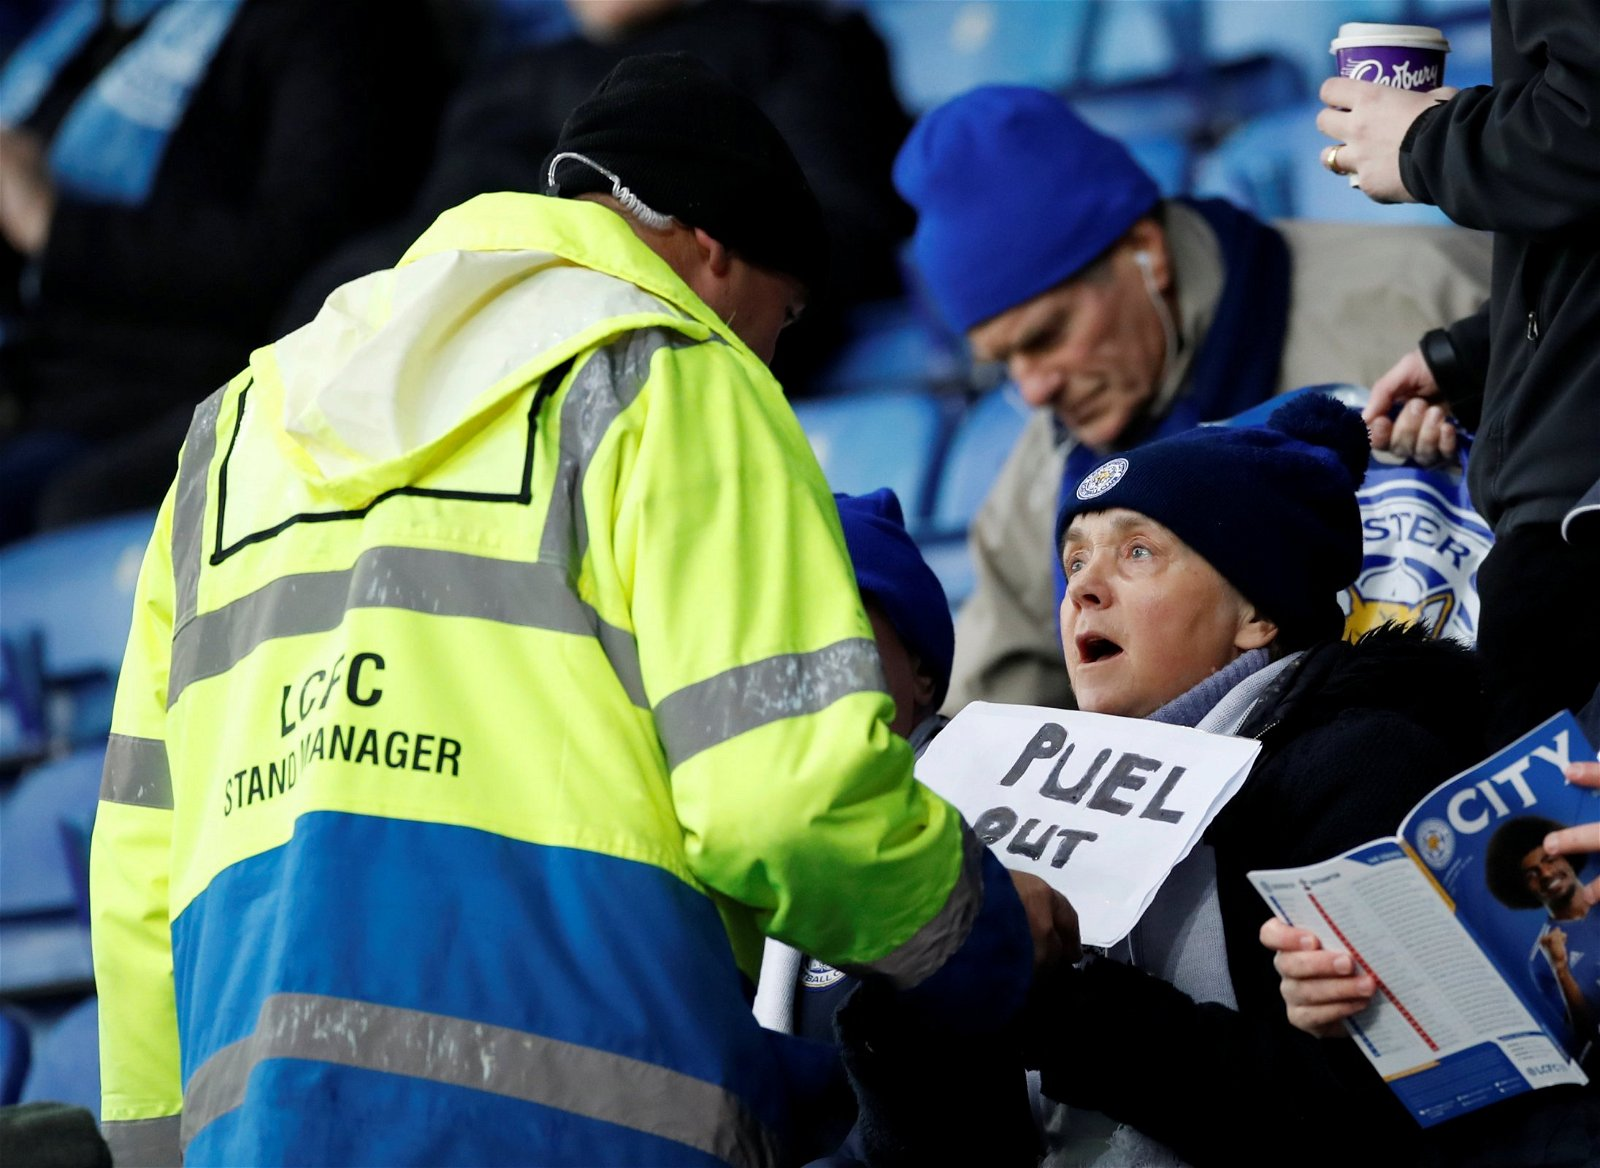 A Leicester City steward confiscates a sign saying 'Puel Out' from a fan before the Southampton match